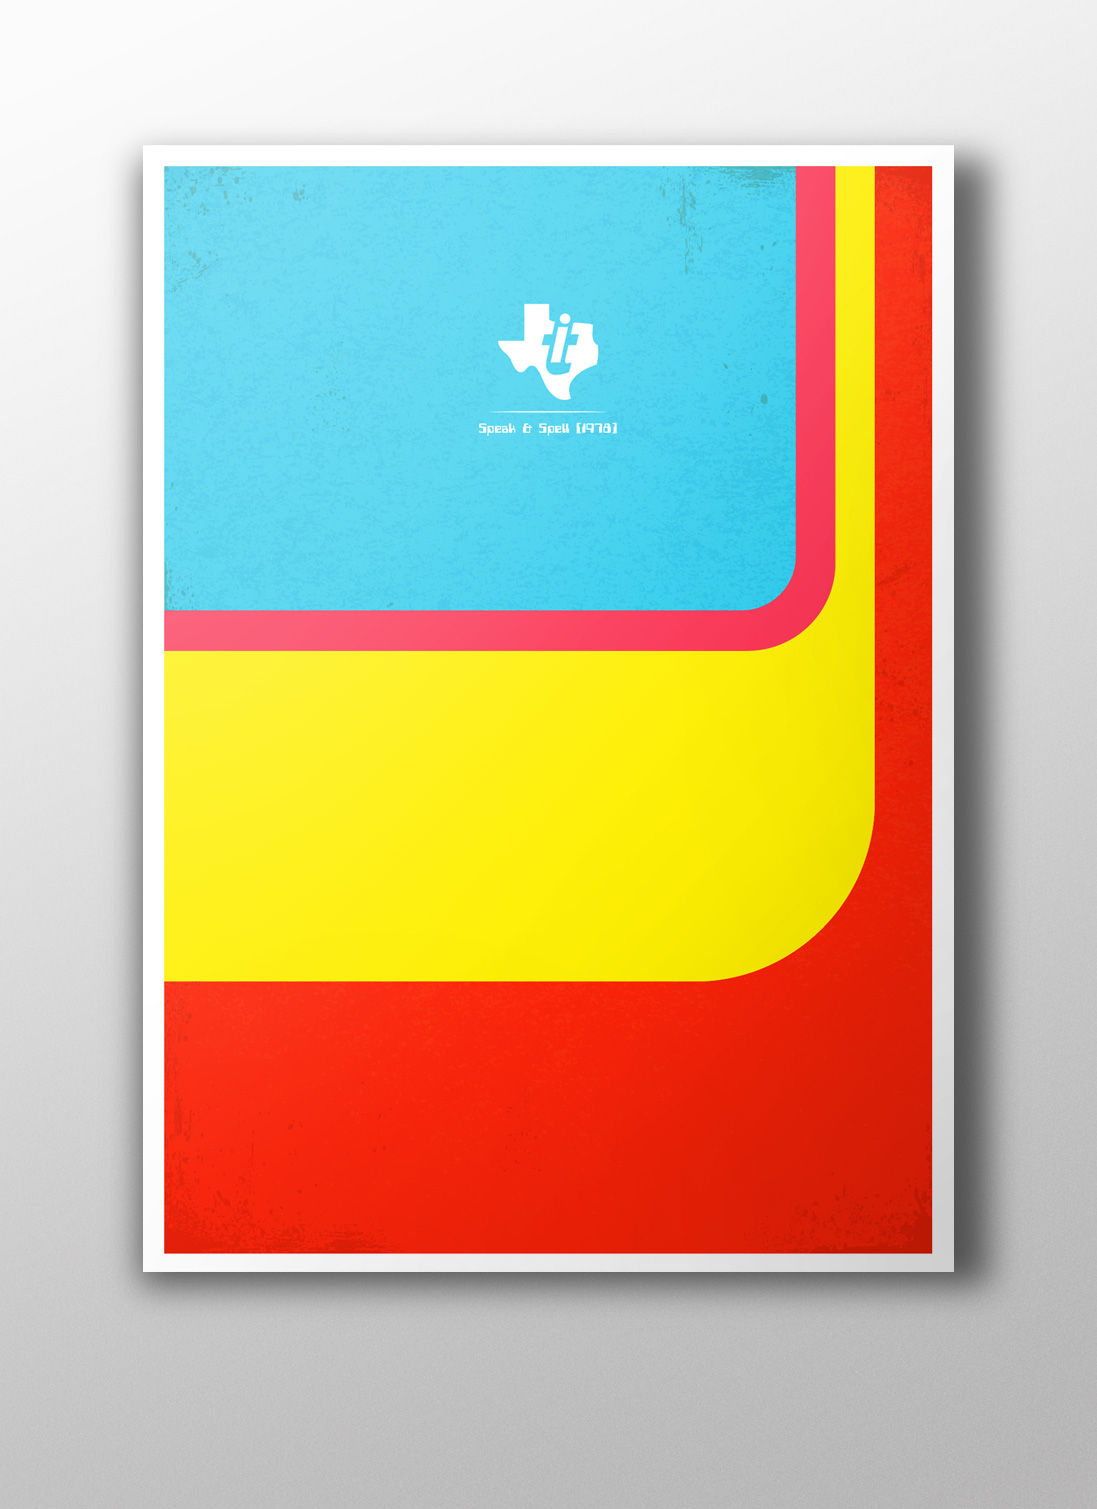 Speak & Spell Minimalist Poster